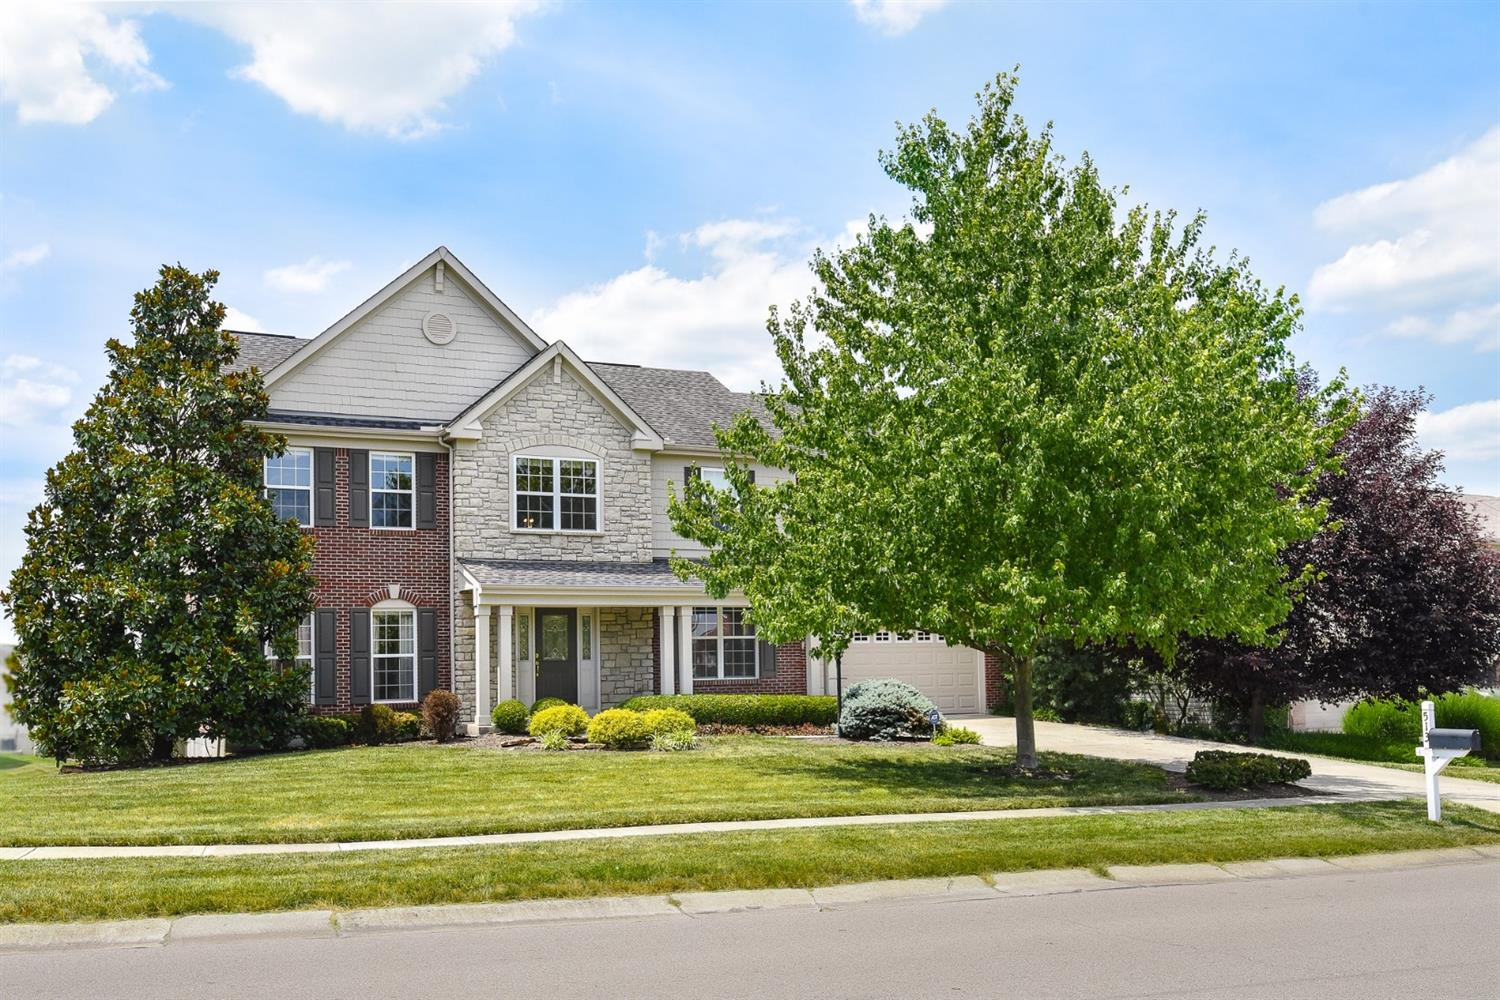 513 Laurelwood Dr Cleves, OH